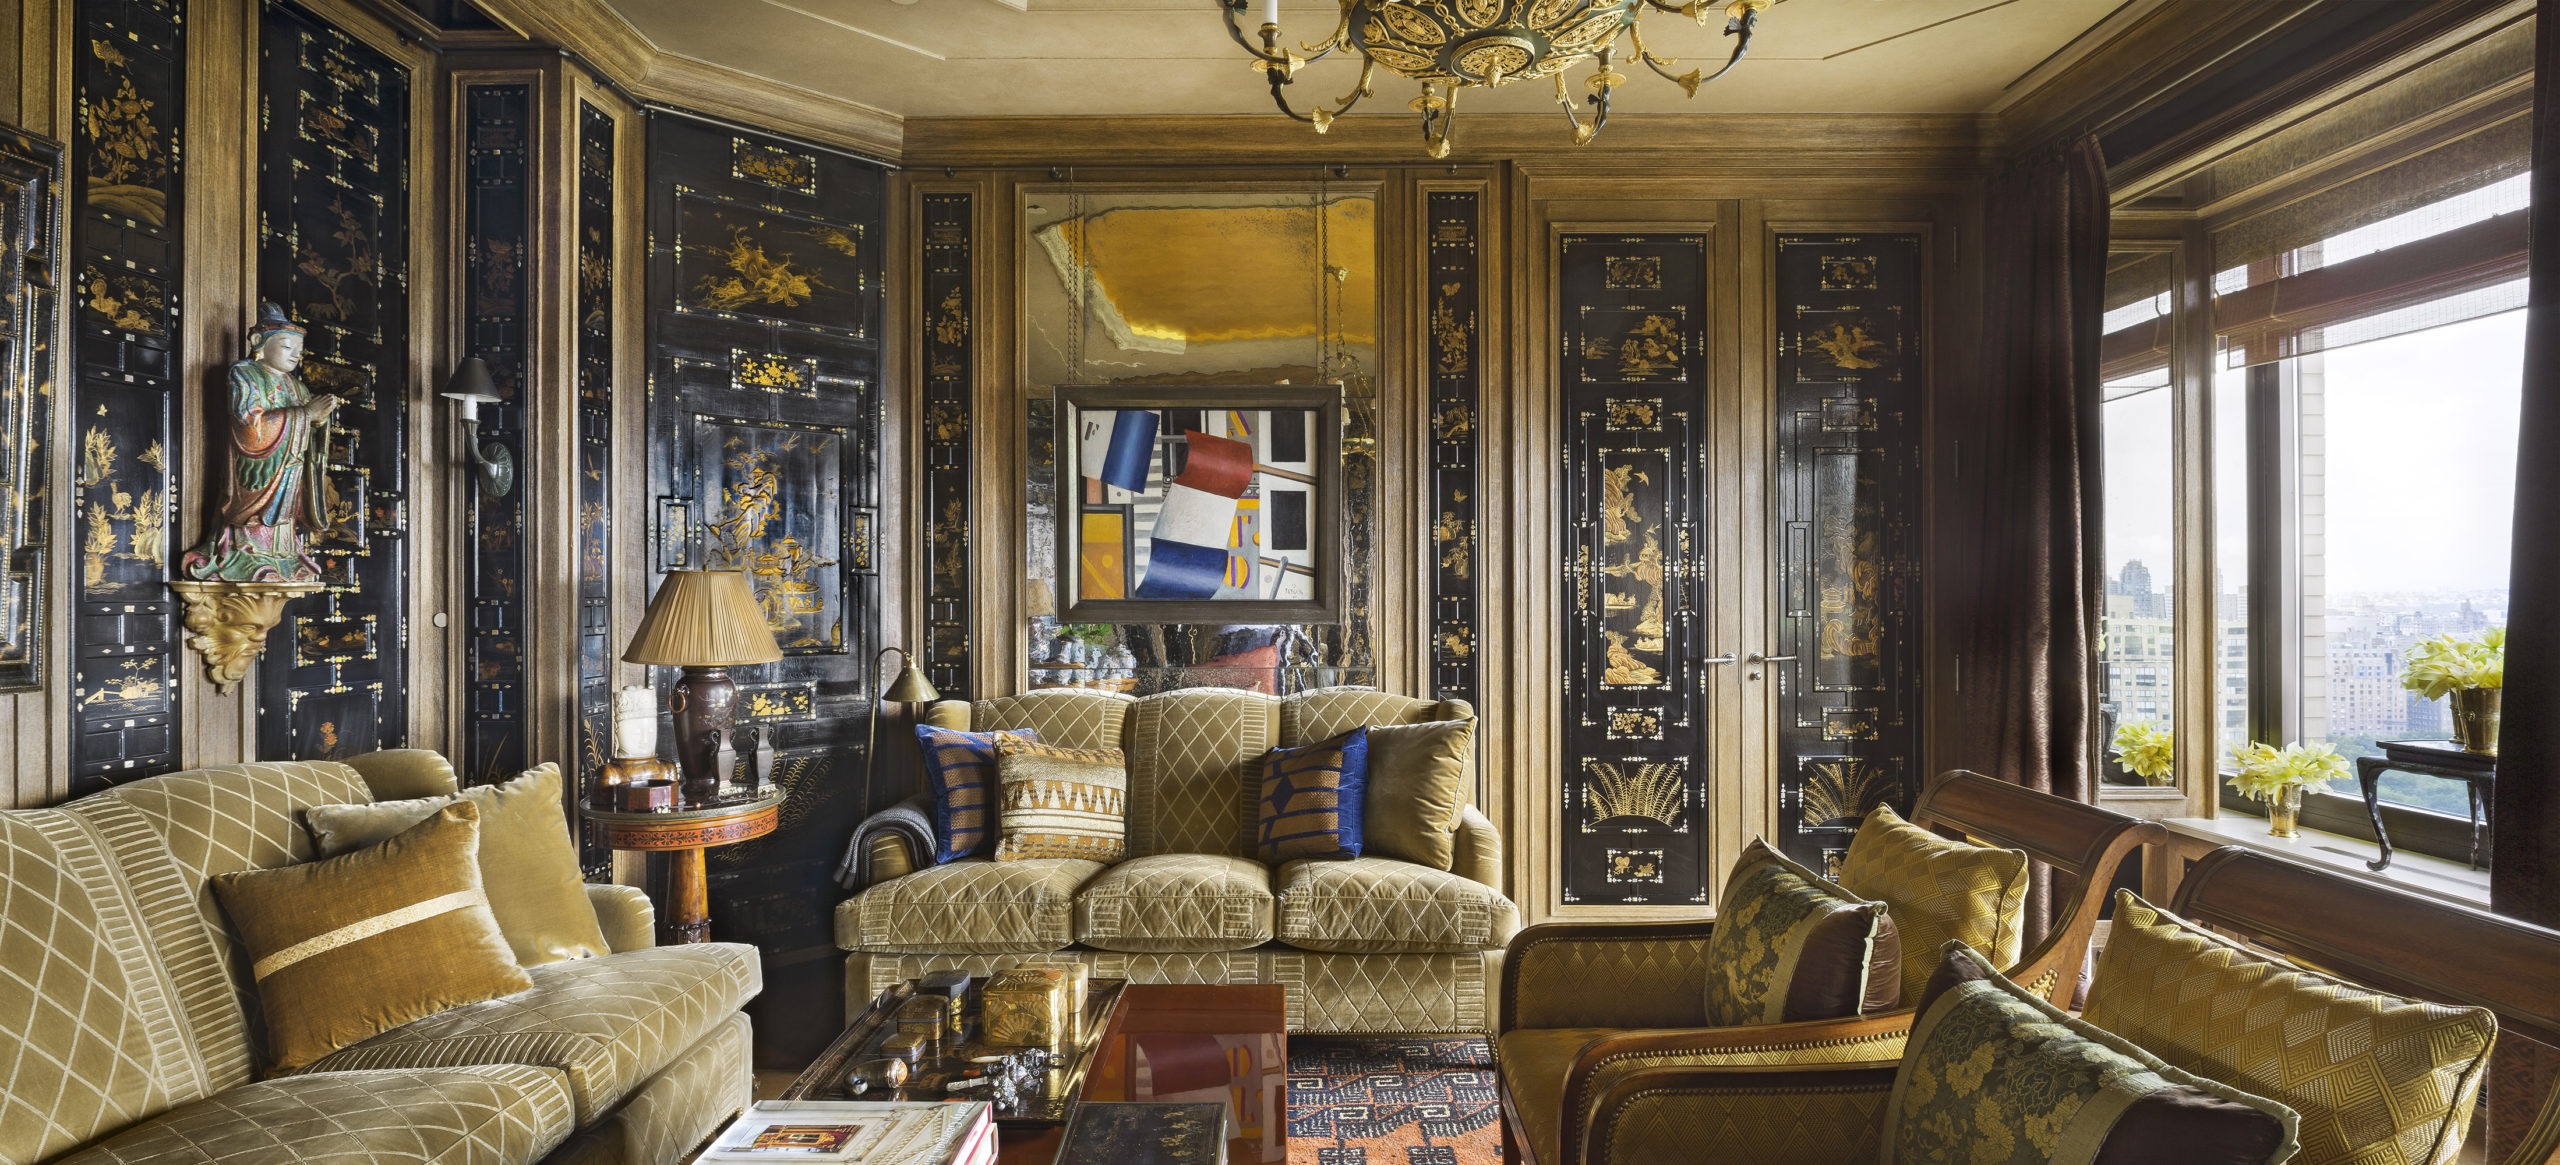 Black and gold Canton lacquer woodwork, largely redone by Féau Boiseries to adorn the small living room of a Manhattan apartment